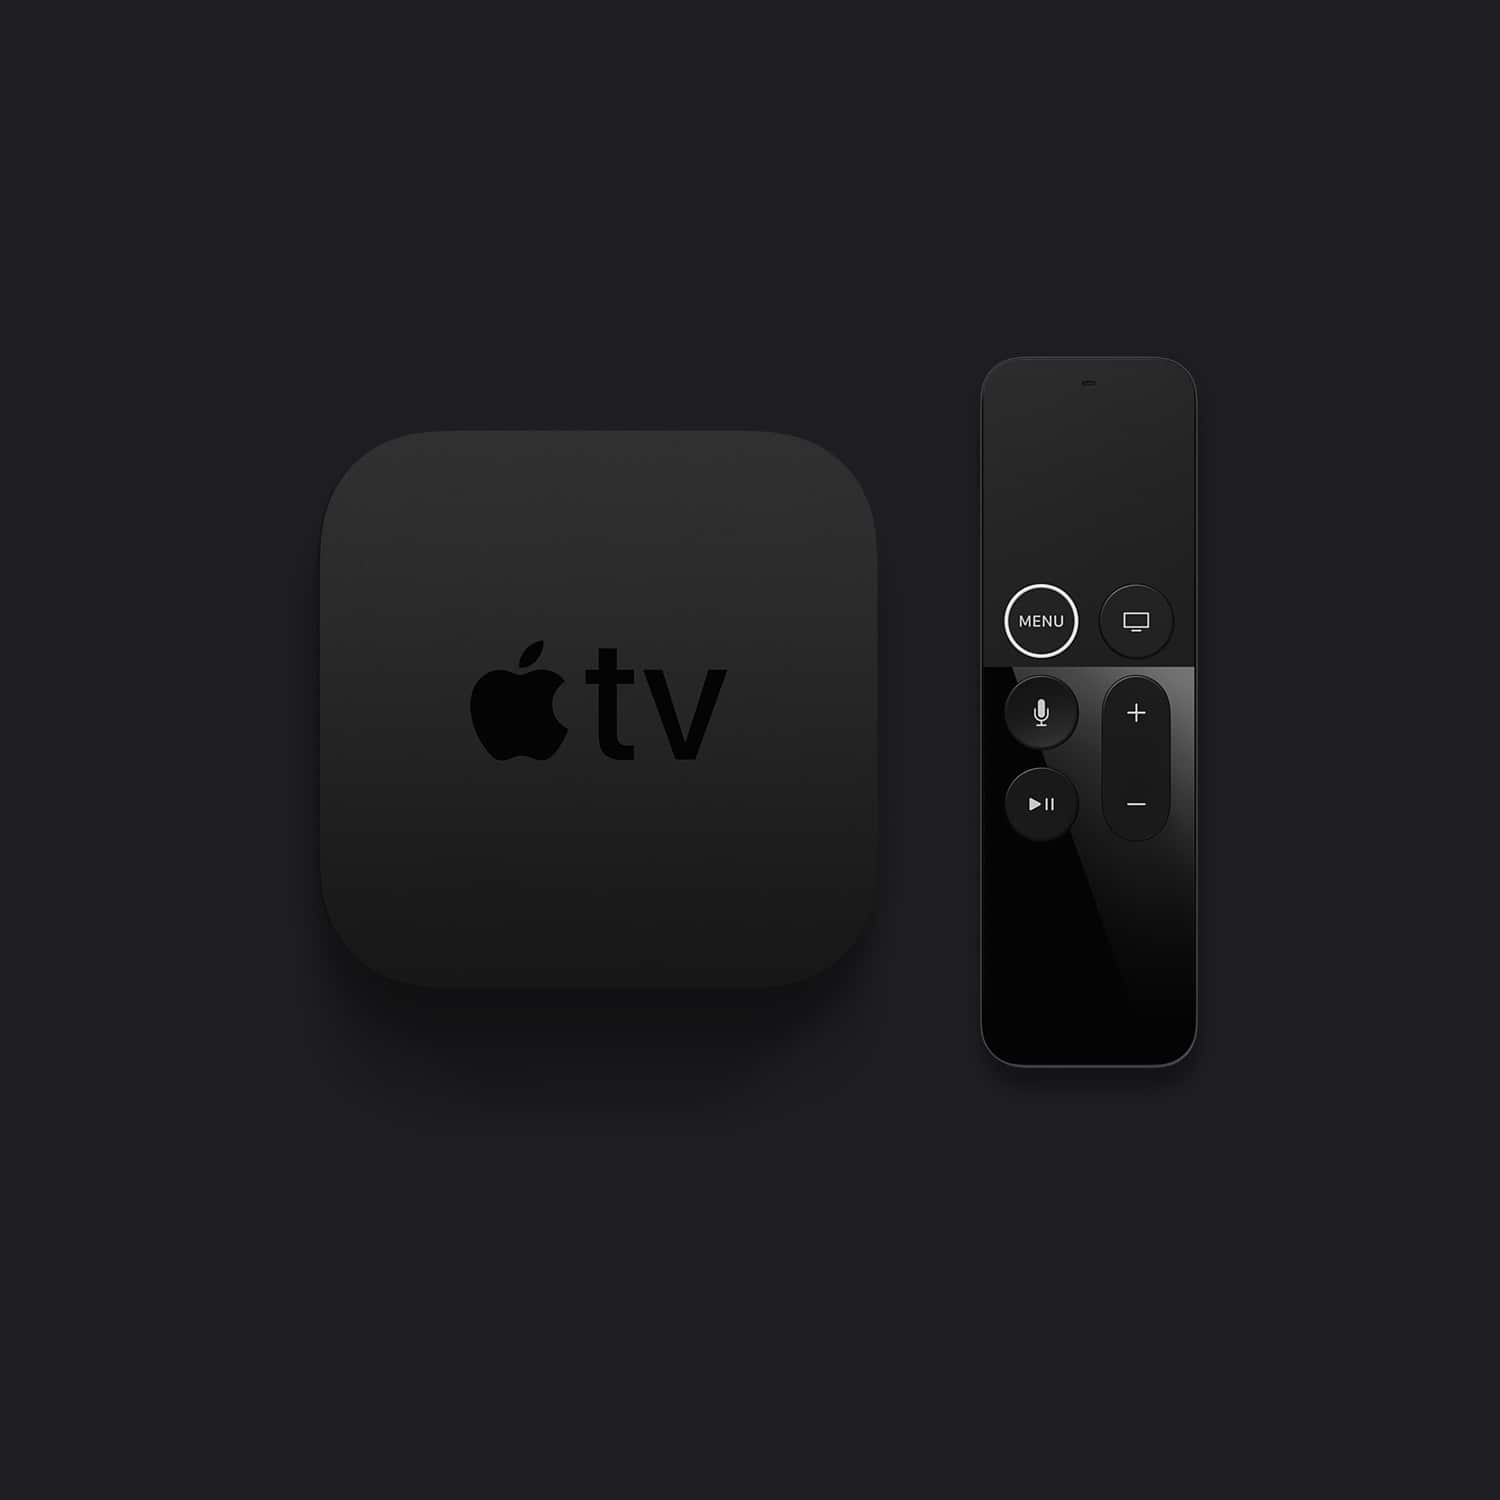 homekit steuerzentrale einrichten apple tv ipad und homepod. Black Bedroom Furniture Sets. Home Design Ideas